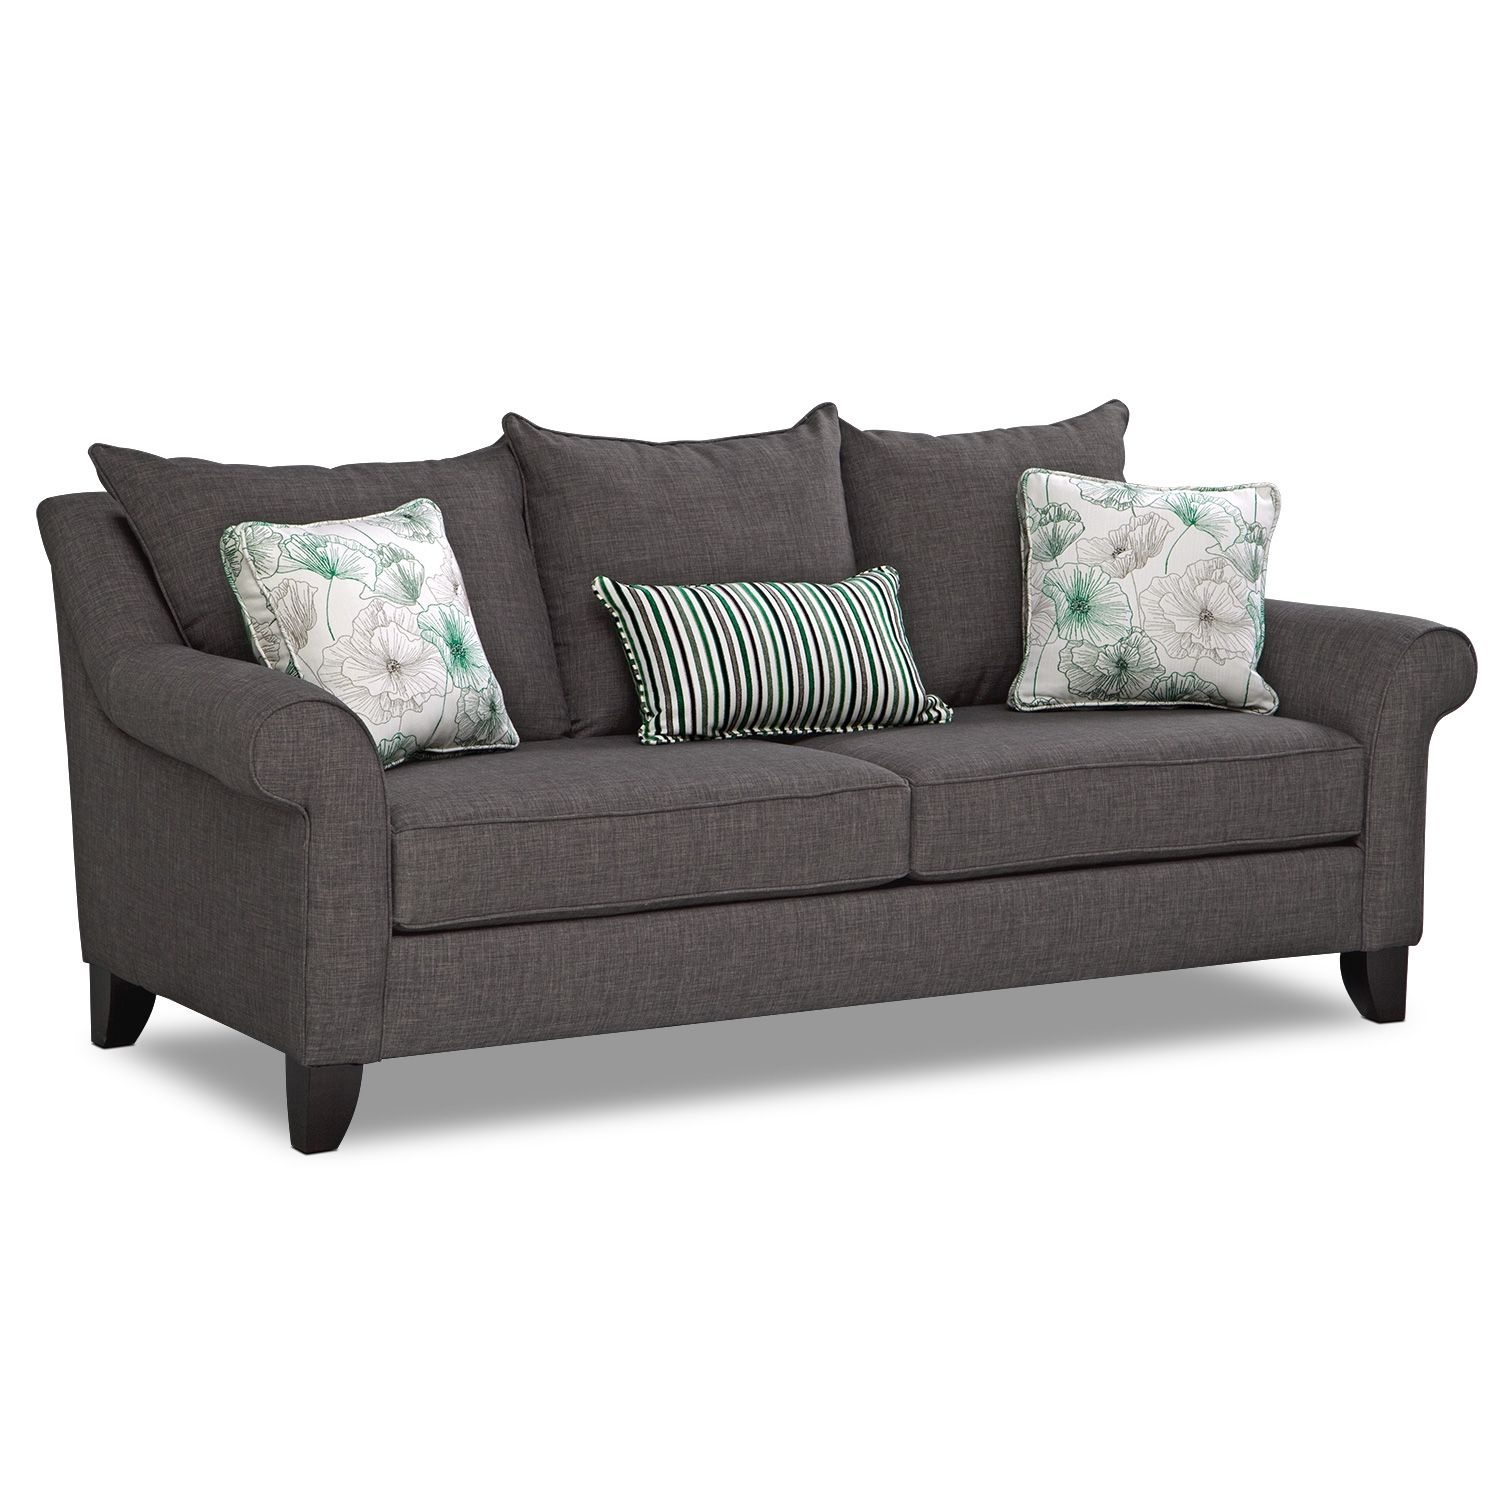 Alexandria Queen Innerspring Sleeper Sofa